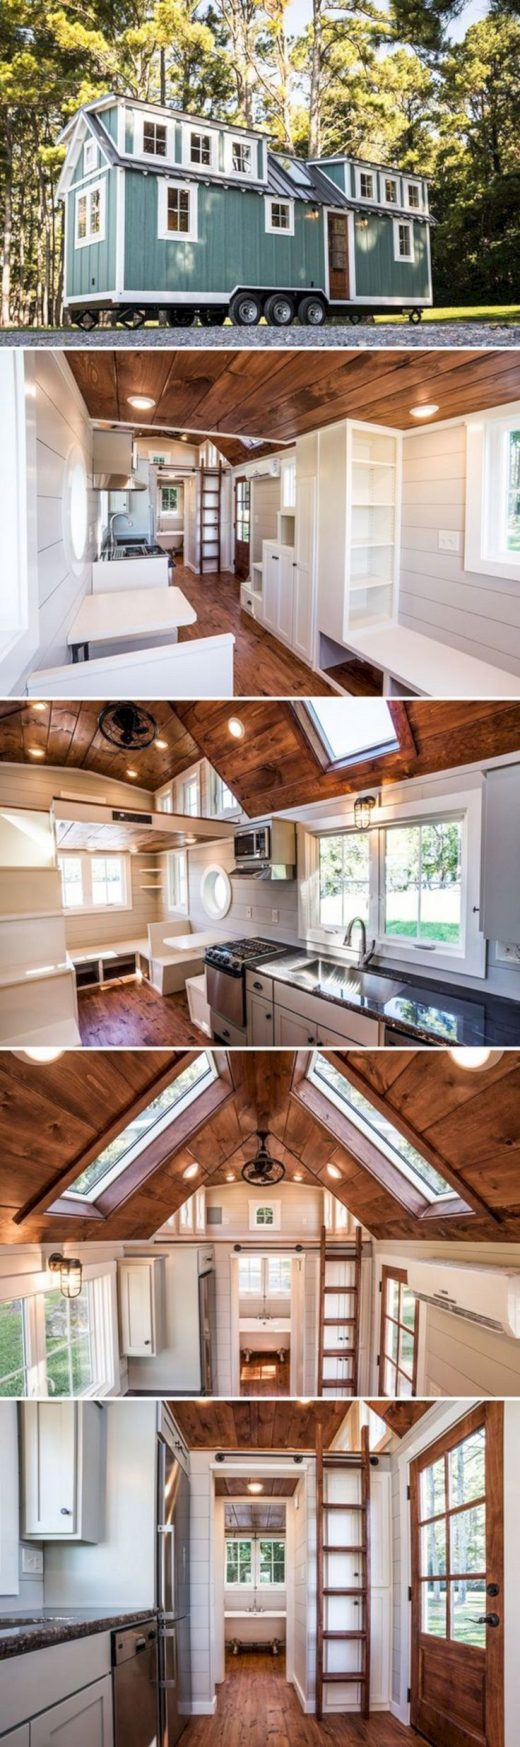 Best And Most Amazing Luxurious Tiny Houses Design 009